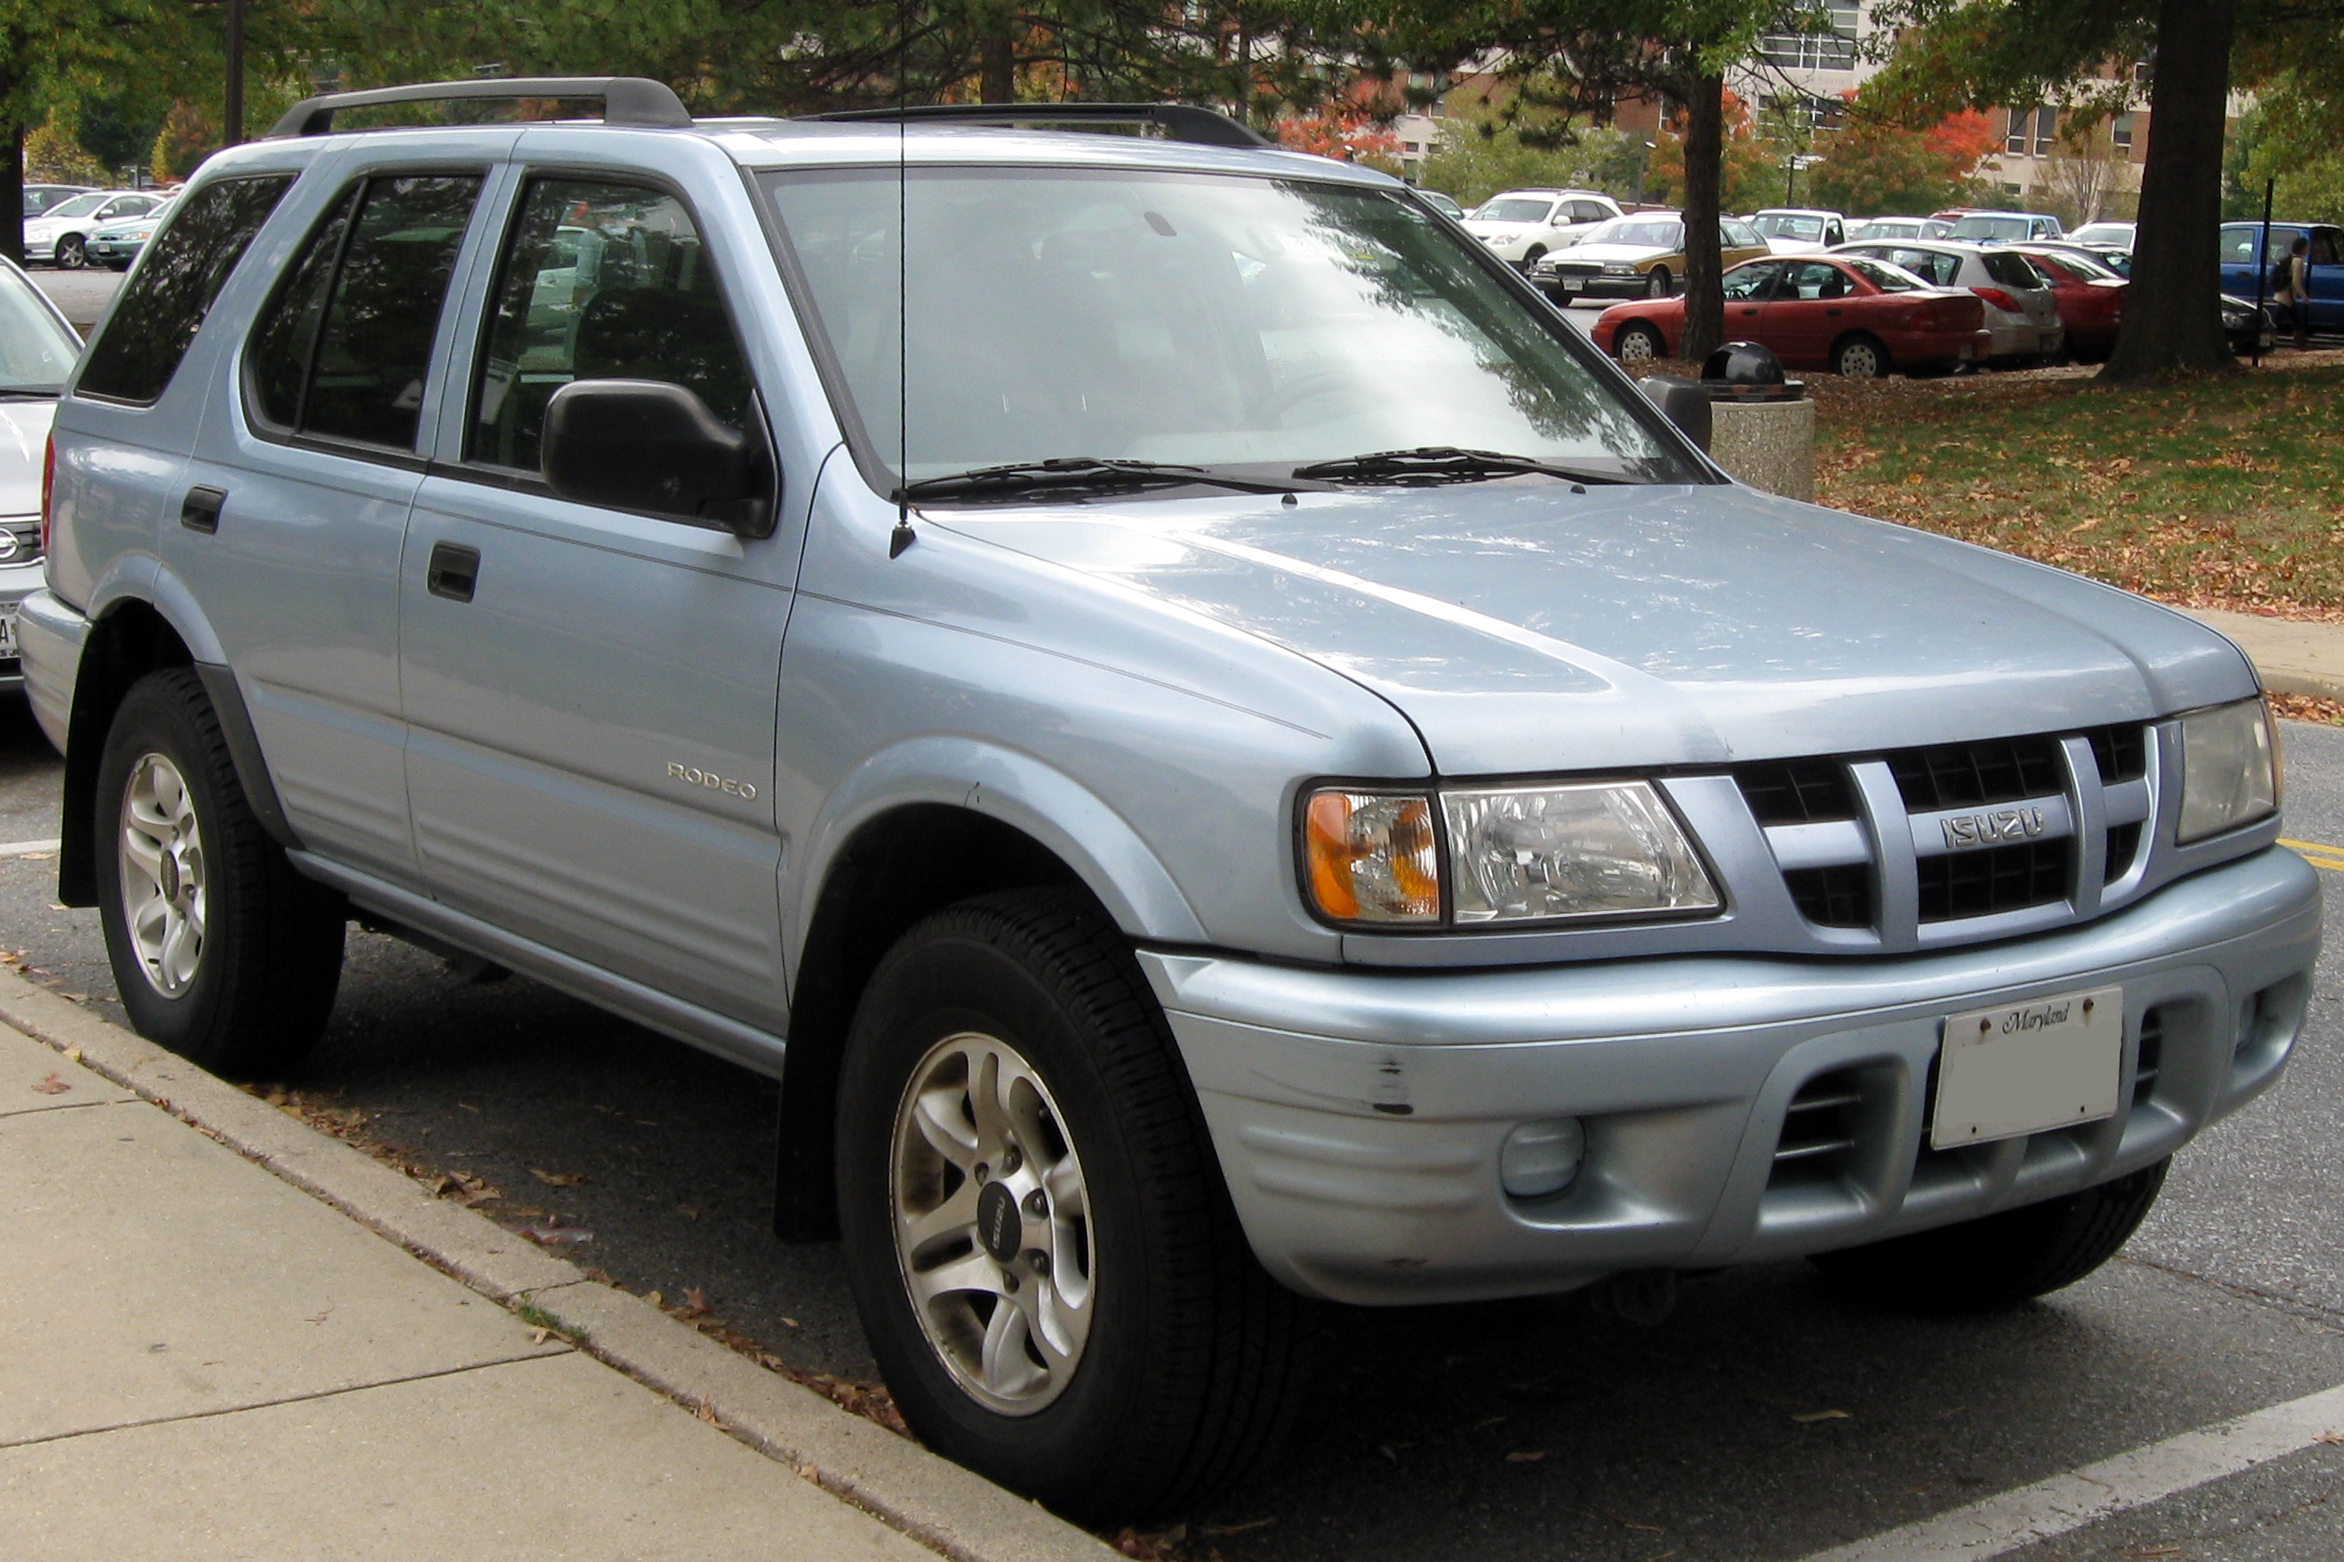 File 2004 Isuzu Rodeo 10 20 2010 Jpg Wikimedia Commons